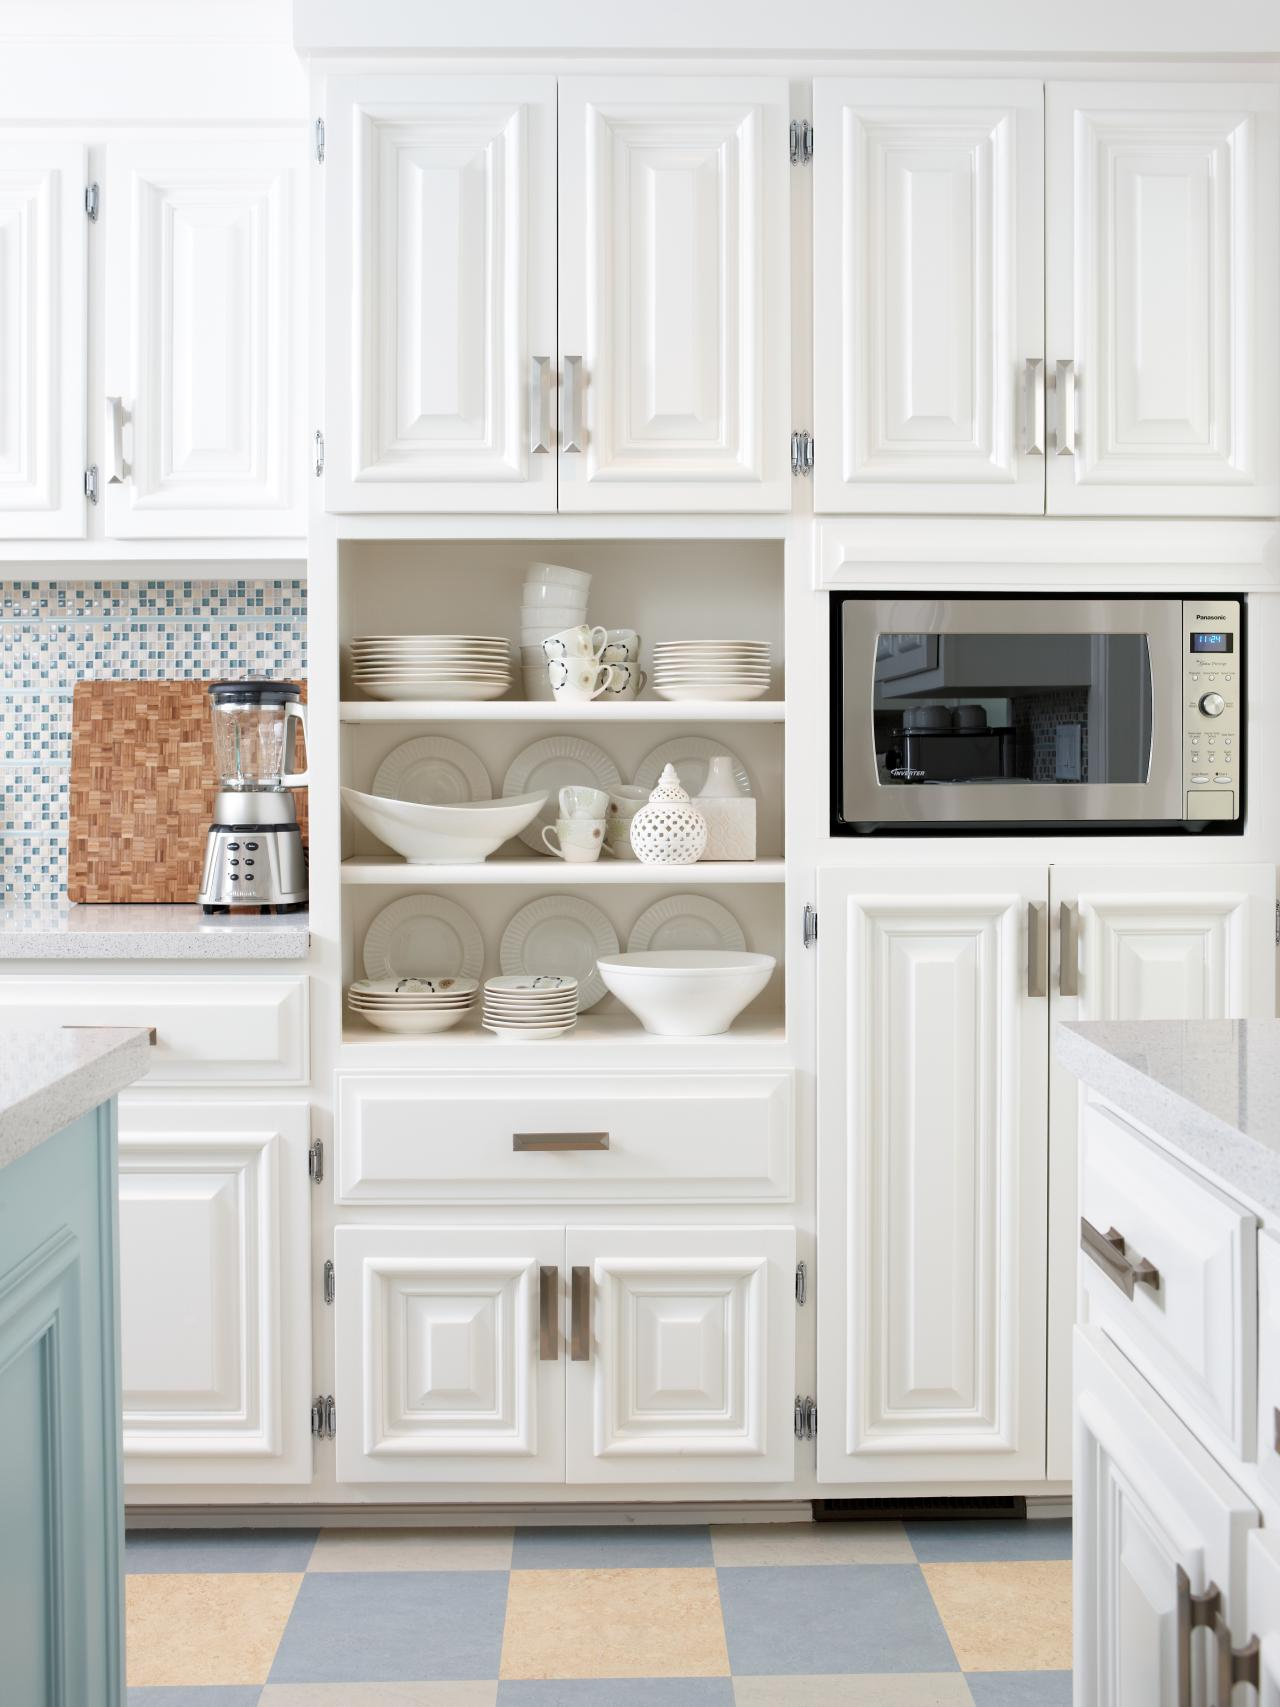 Free Download Our 50 Favorite White Kitchens Kitchen Ideas Design With Cabinets 1280x1707 For Your Desktop Mobile Tablet Explore 45 Open Kitchen Cabinet Wallpaper Backdrop Wainscoting Wallpaper Kitchen Cabinets